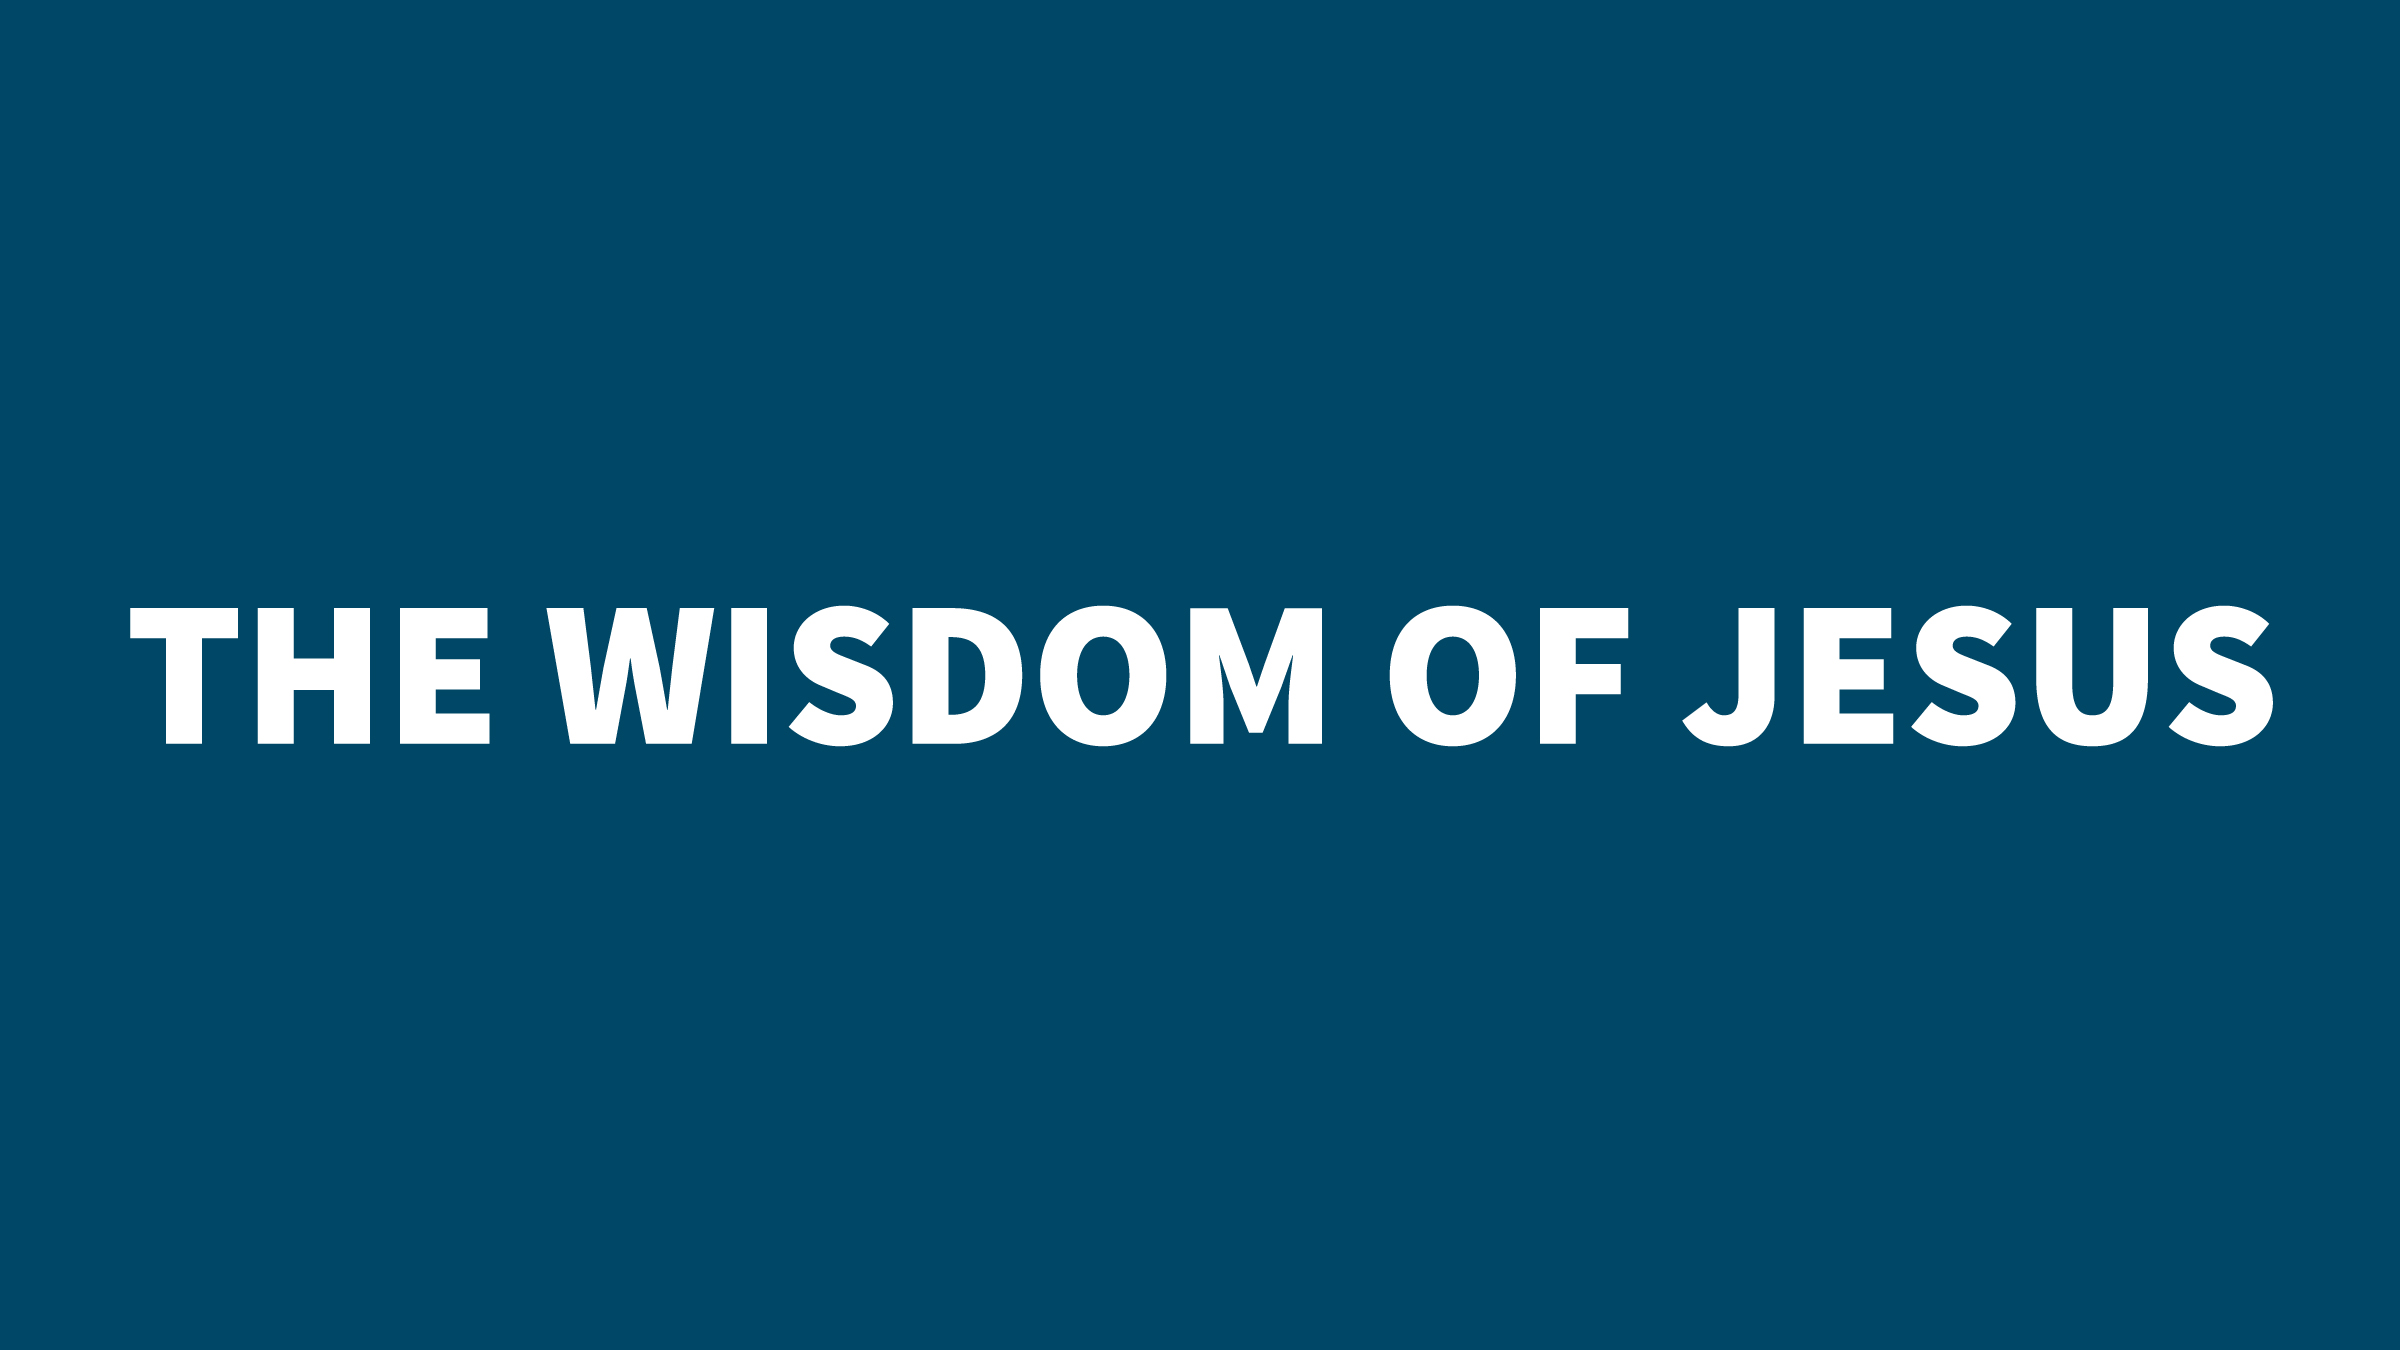 Mark 12 - wisdom of jesus (blue).jpg